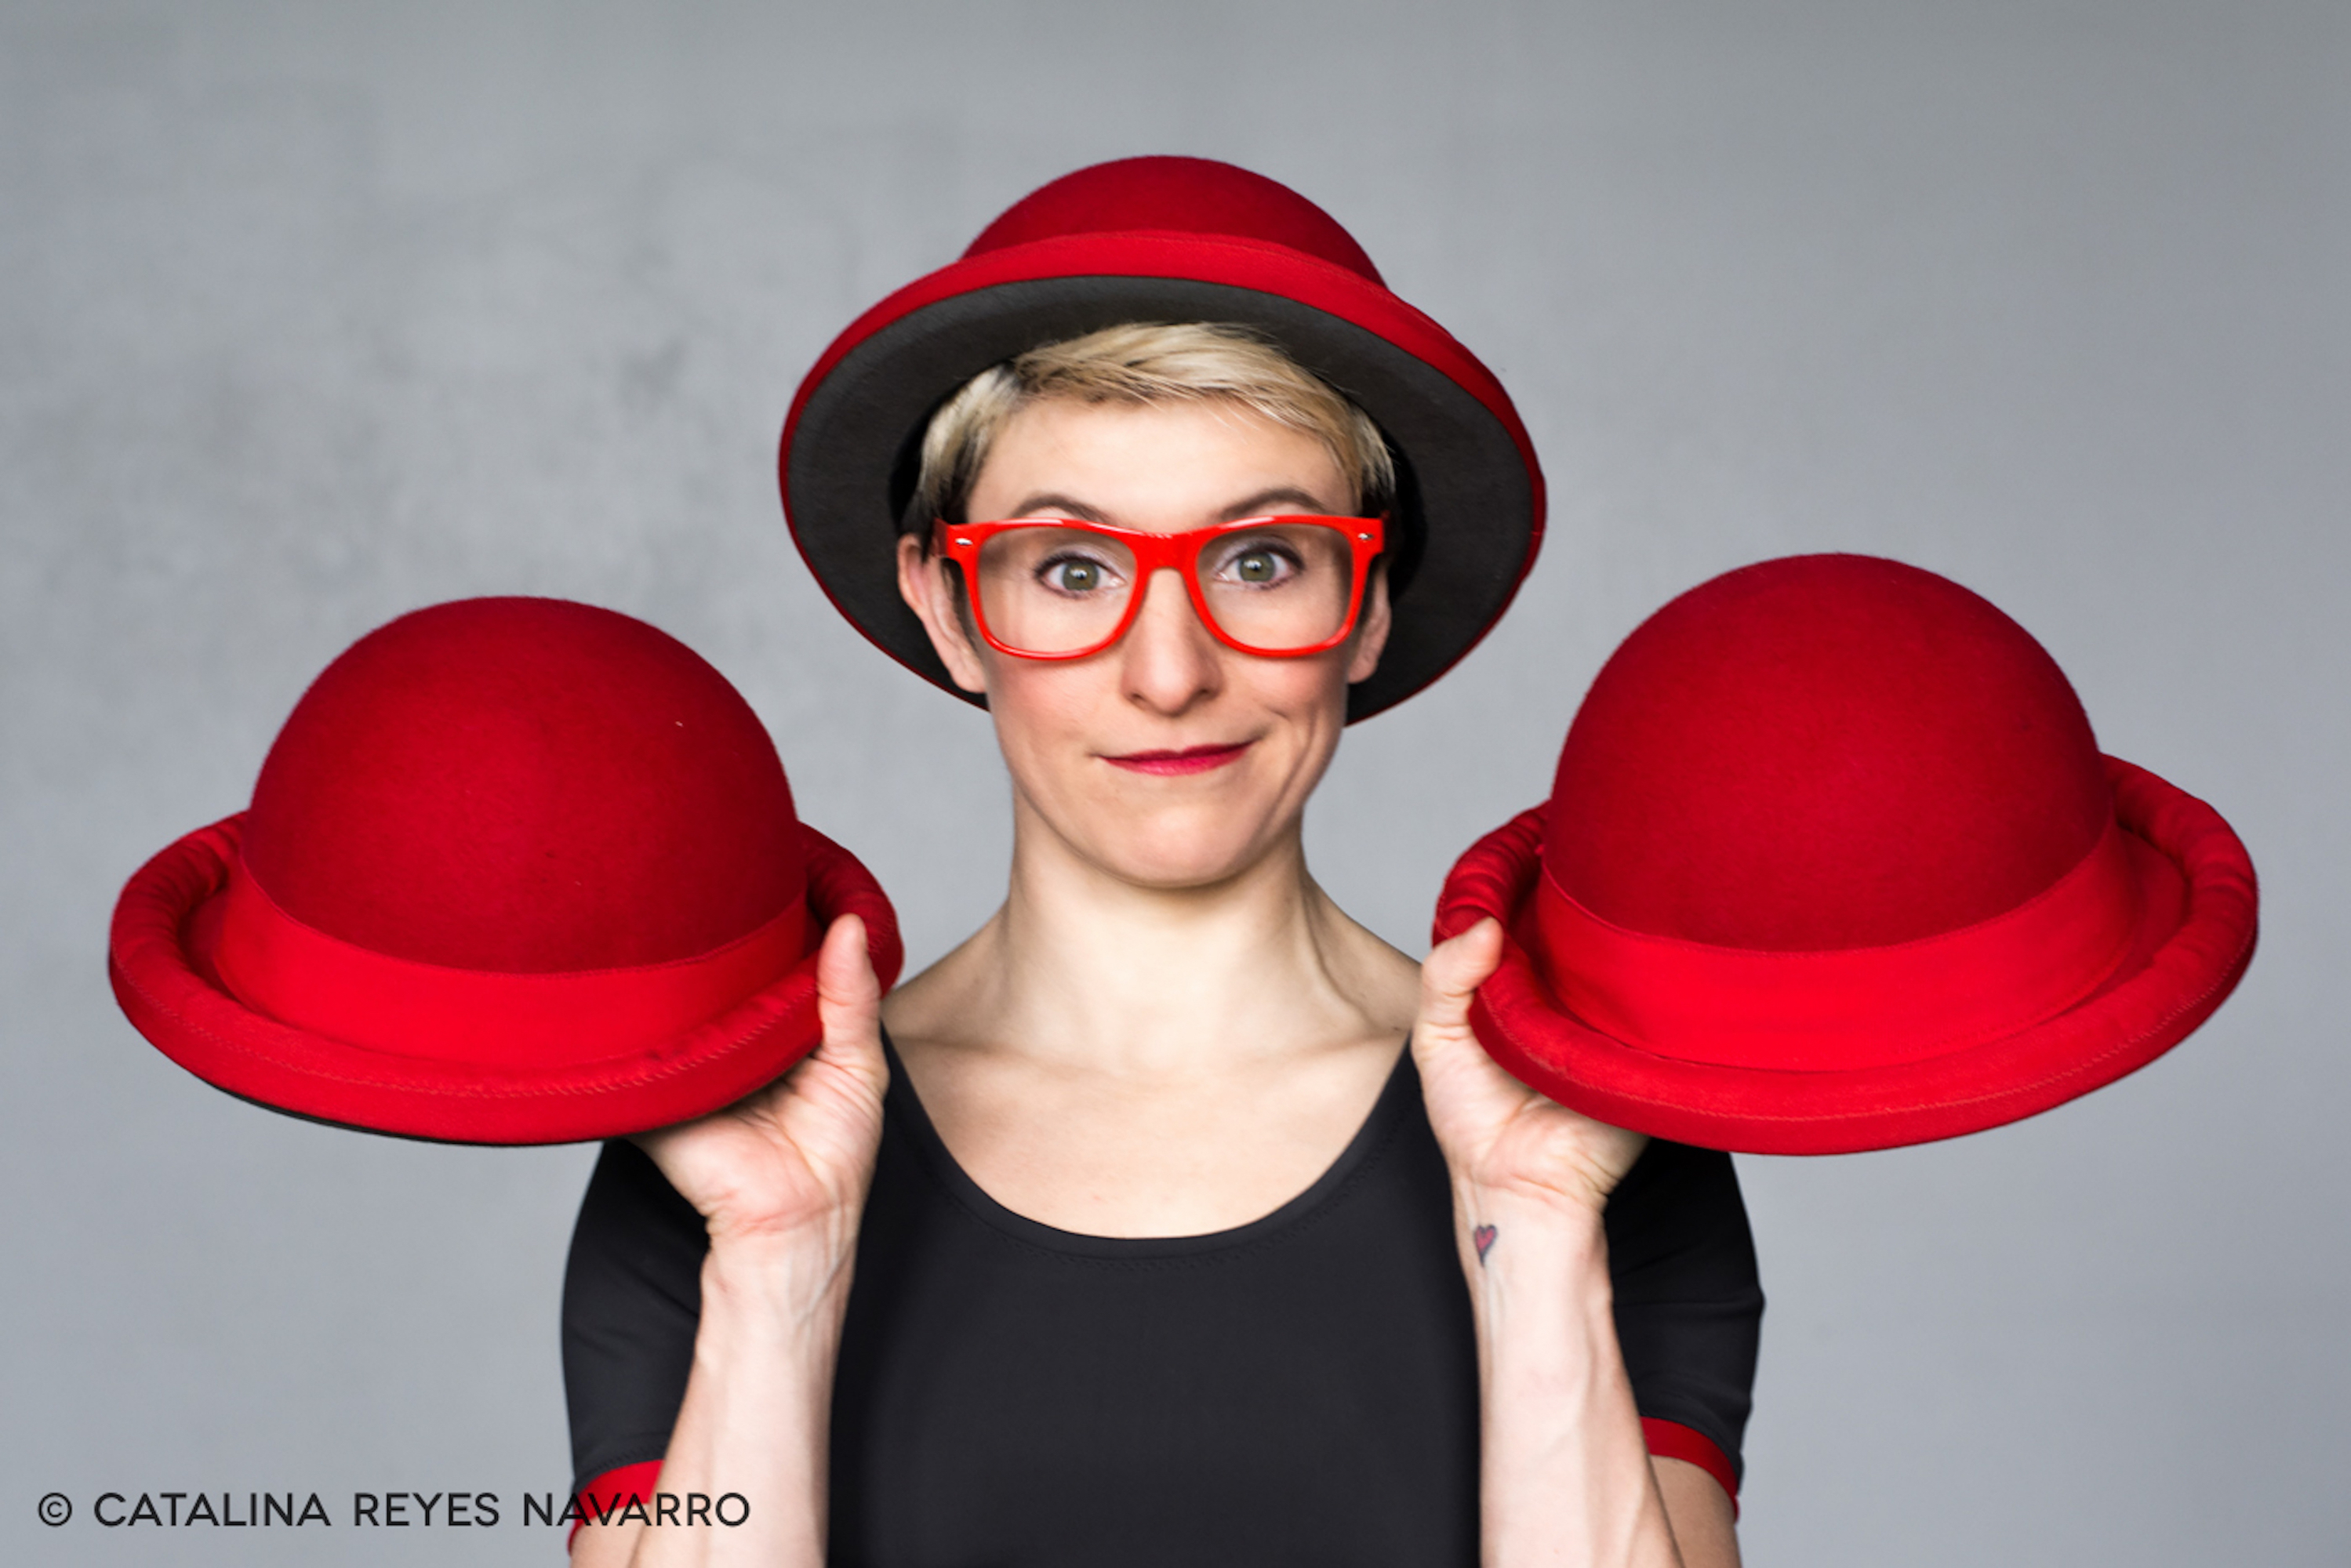 3 red hats and red glasses comedy